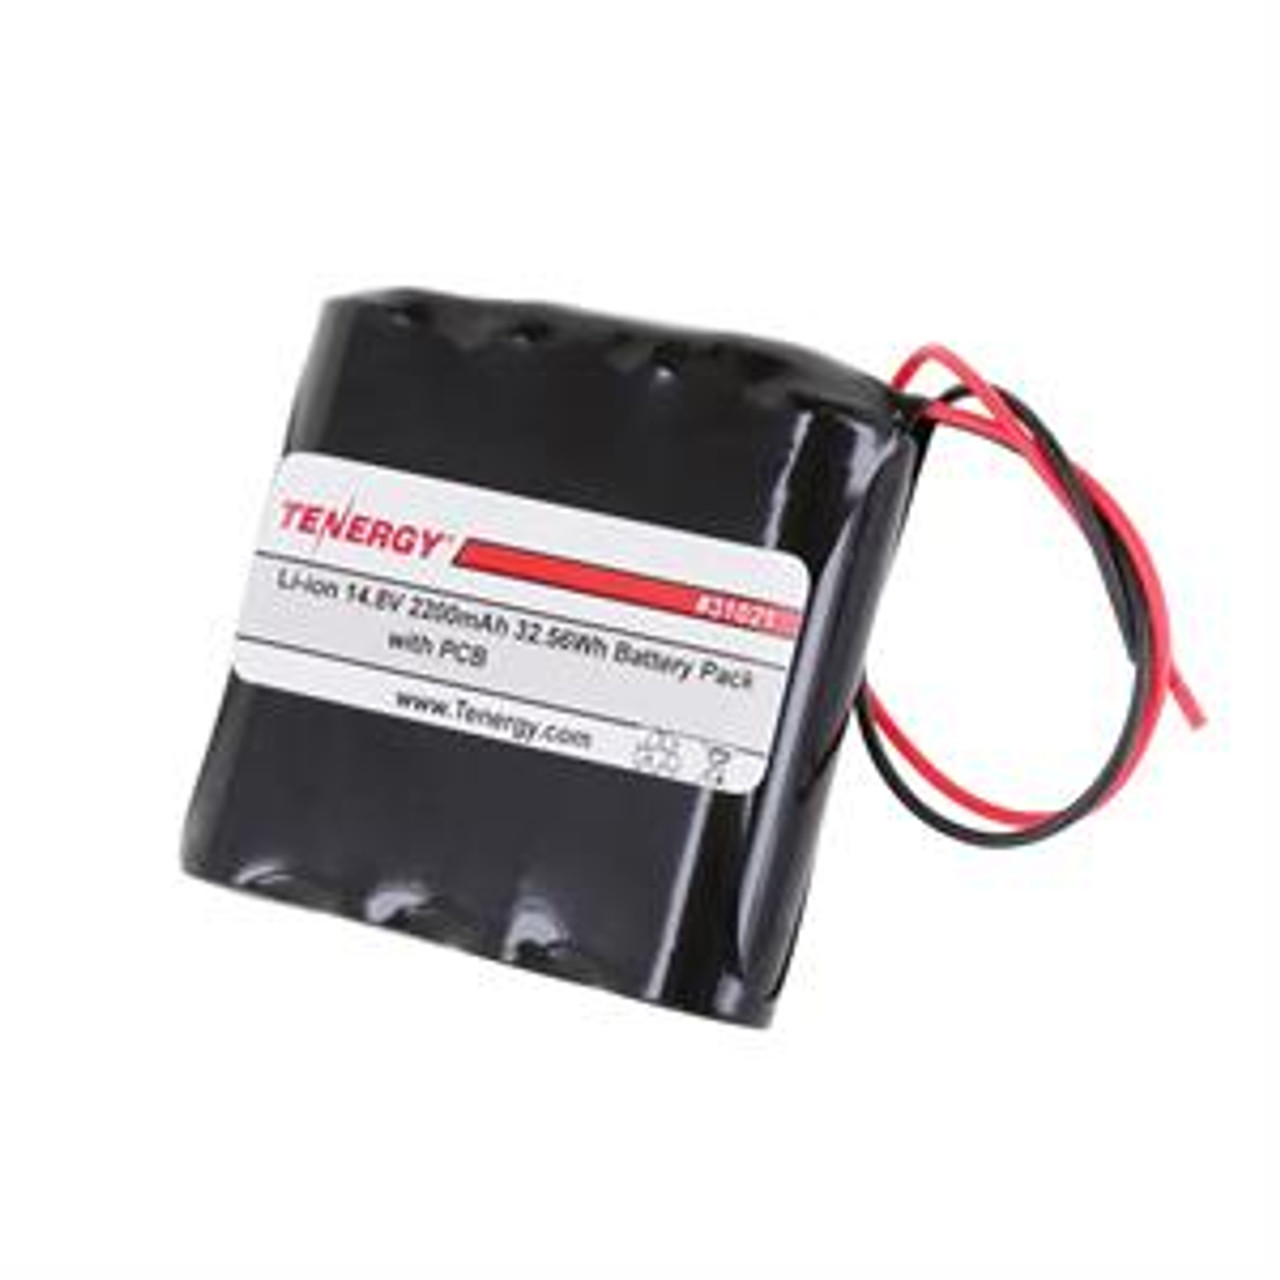 AT: Tenergy Li-ion 14.8V 2200mAh Rechargeable Battery Pack w/ PCB (4S1P, 32.56Wh, 4A Rate)